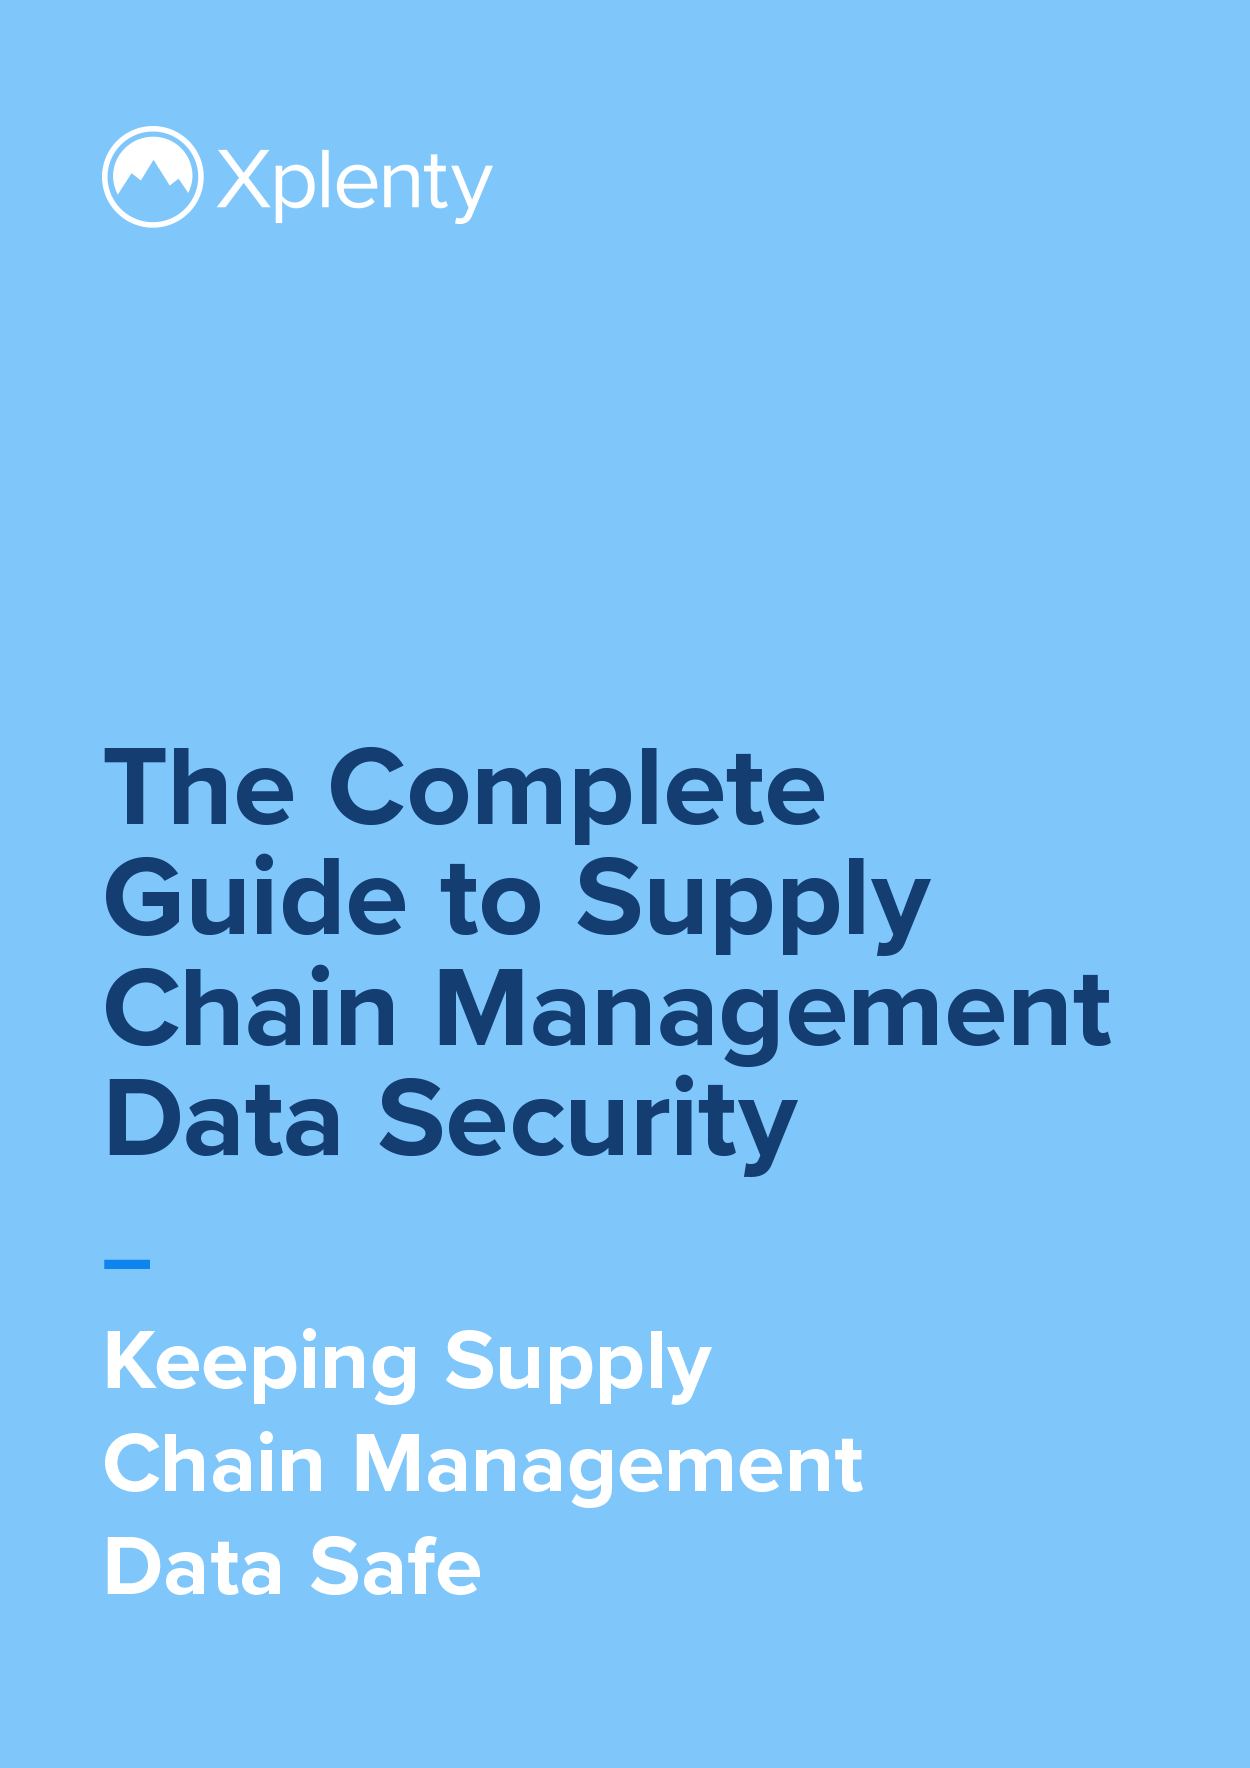 The Complete Guide to Data Security in Healthcare Settings